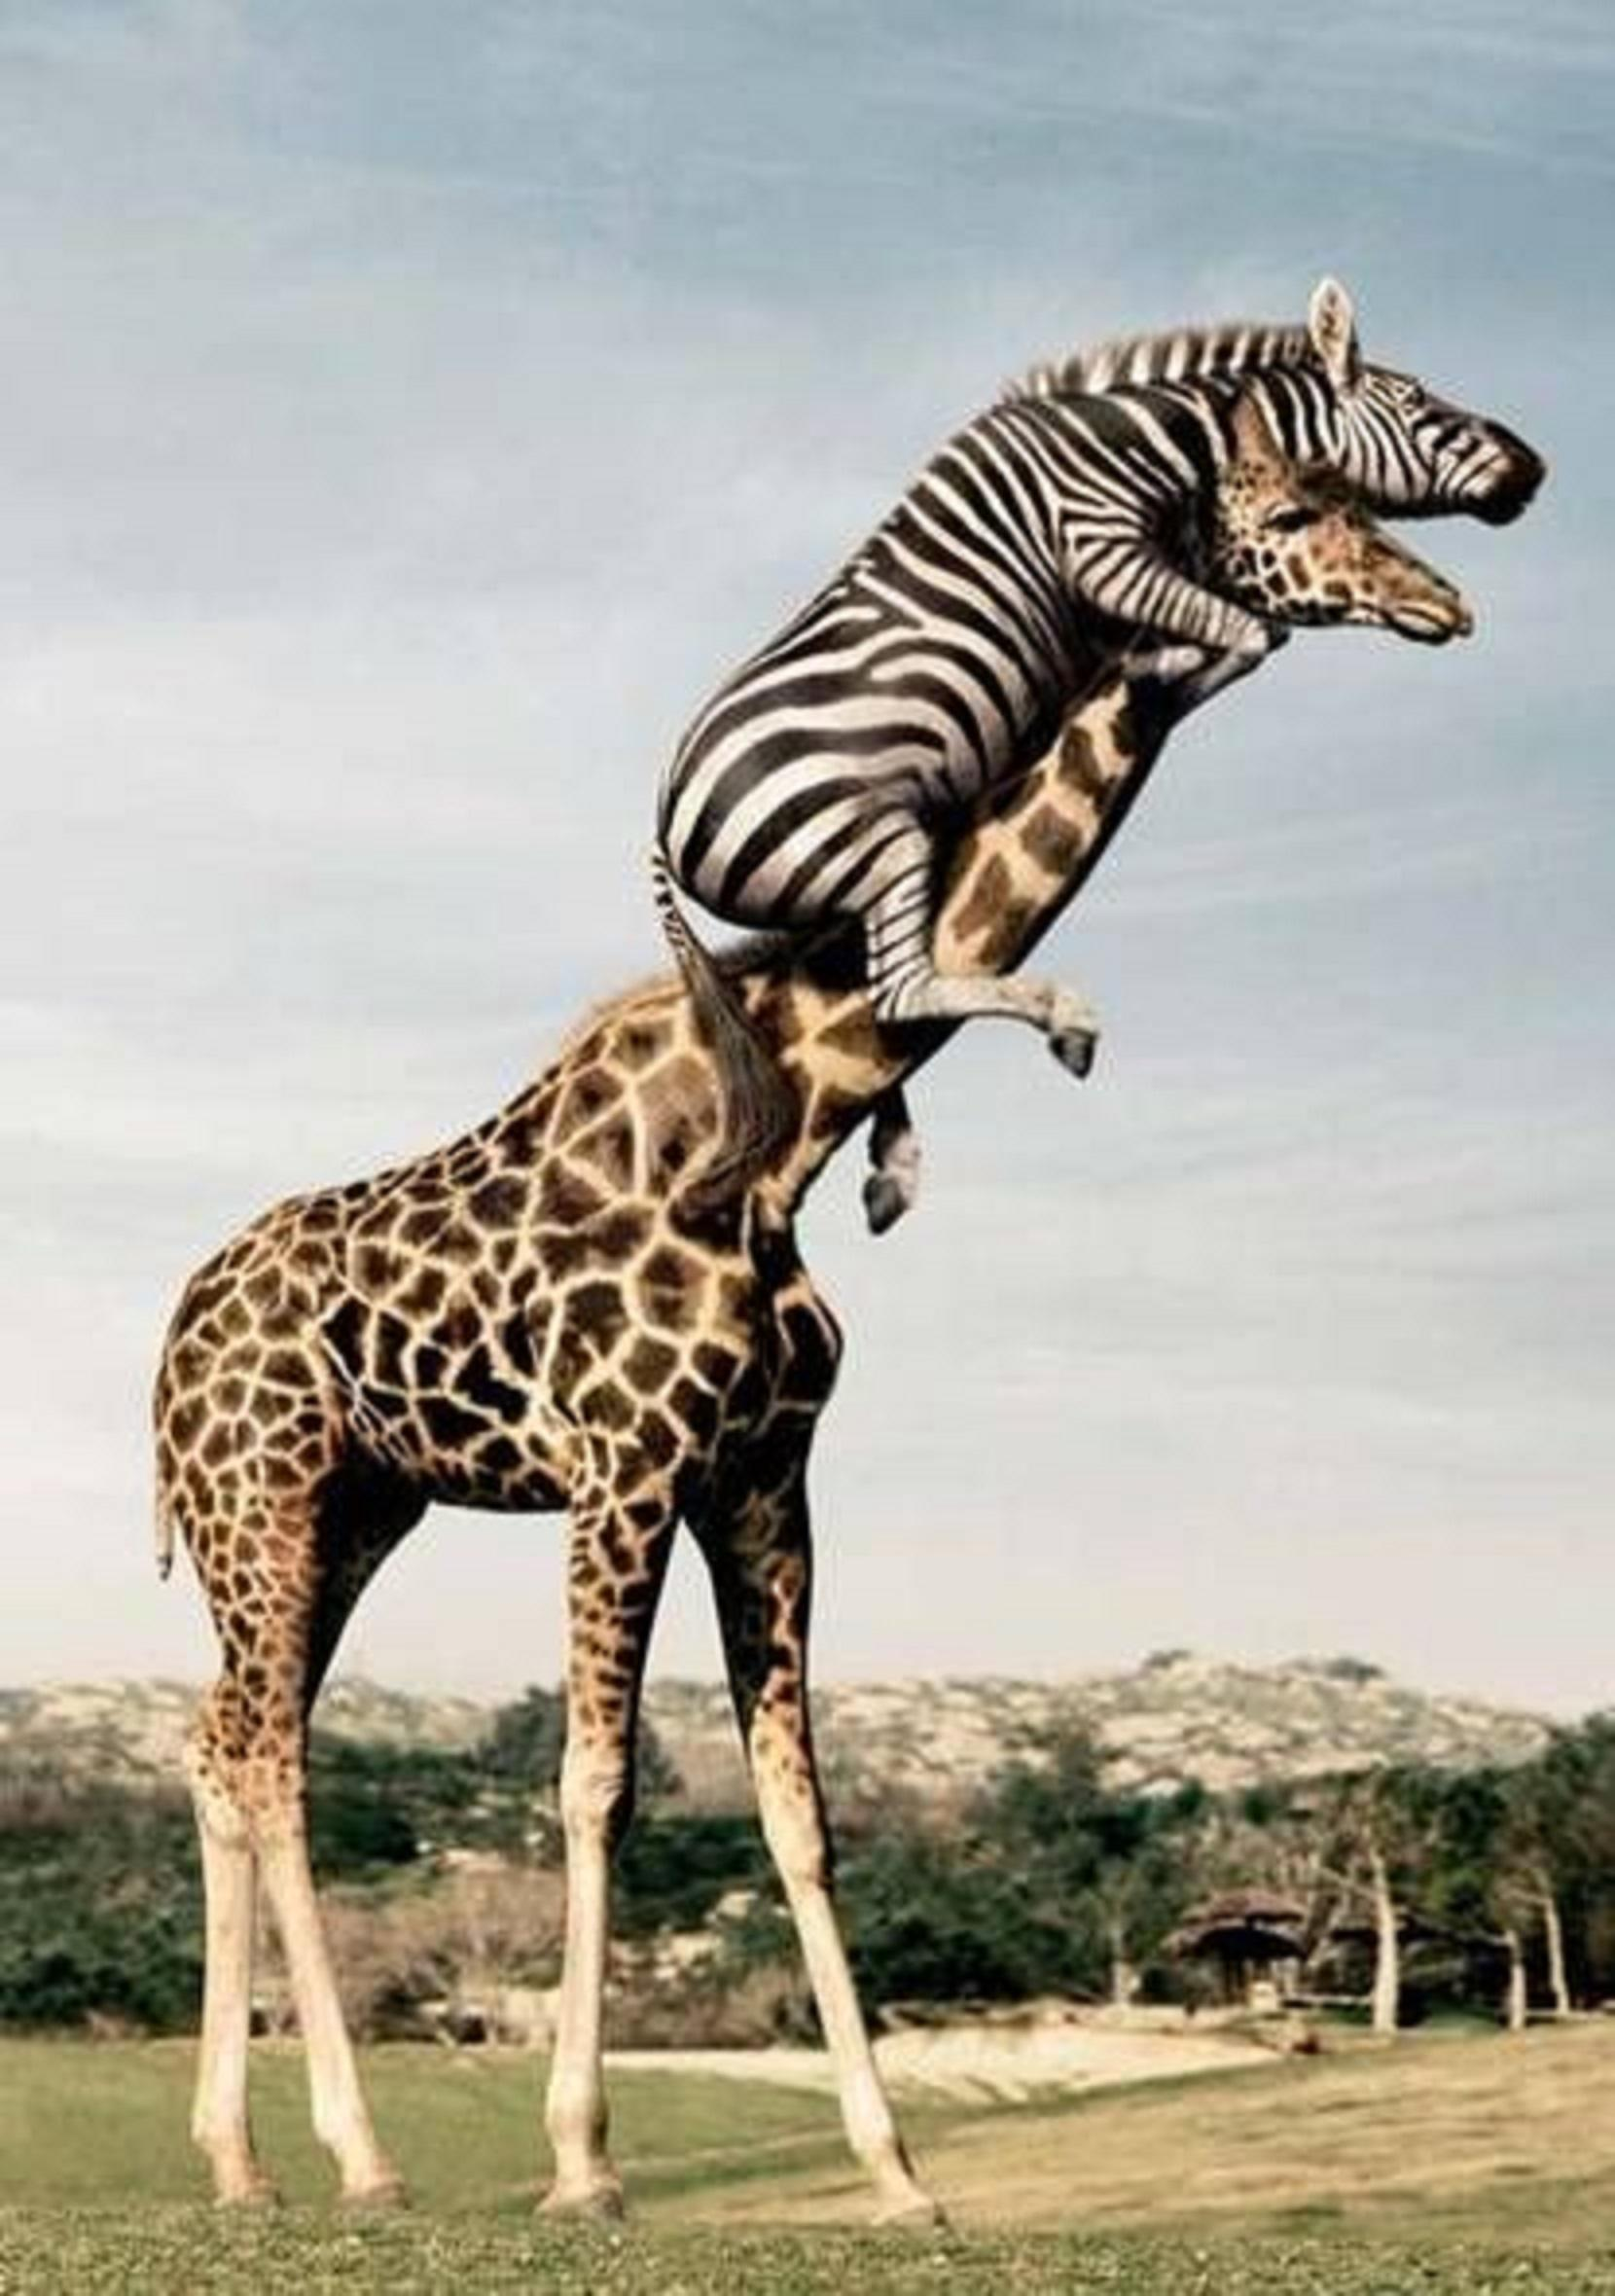 Funny Sporting Zebra And Ziraffe Animal Photo